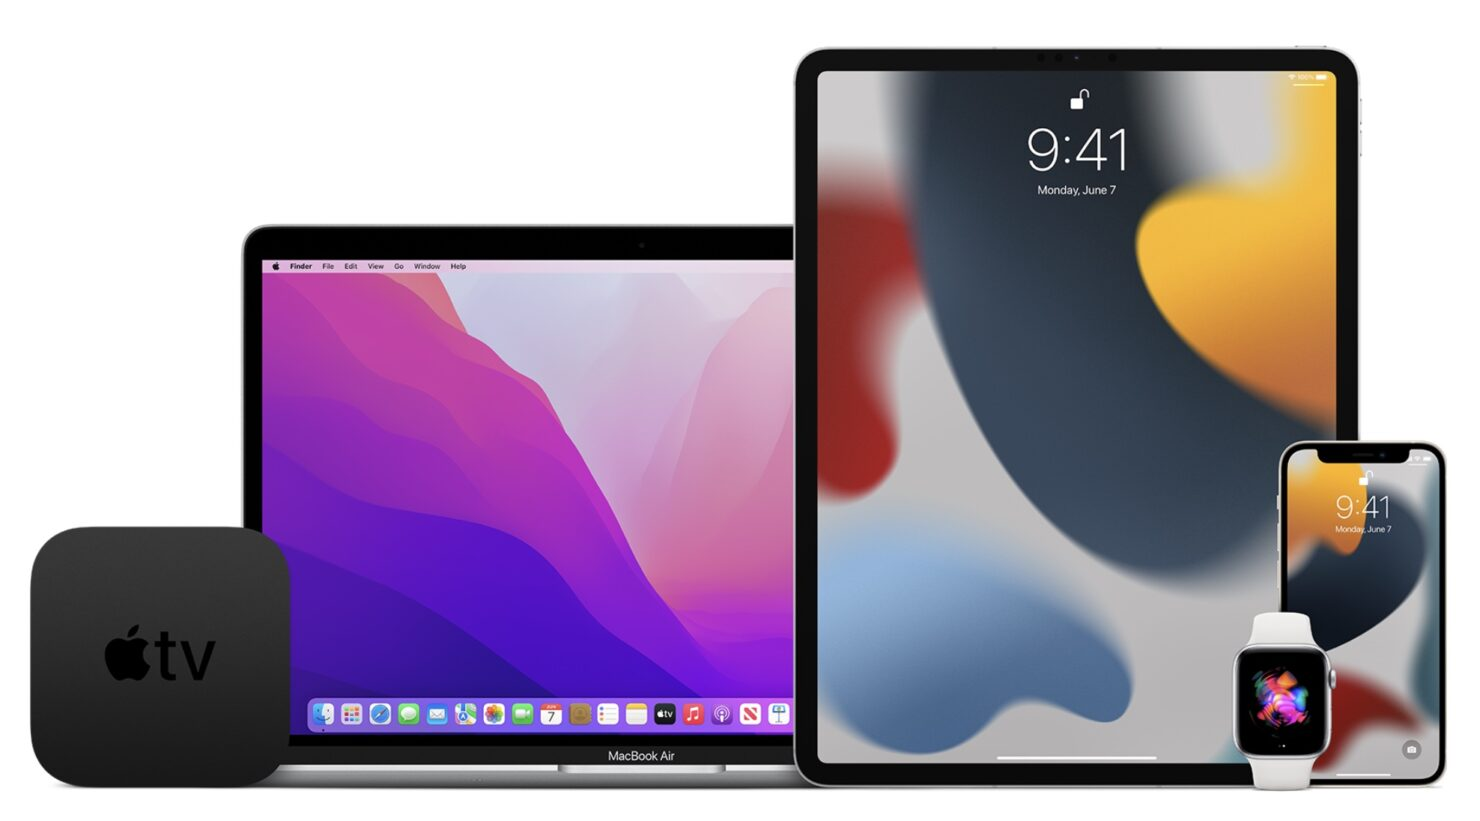 iOS 15.1 and iPadOS 15.1 beta 3 now available for download